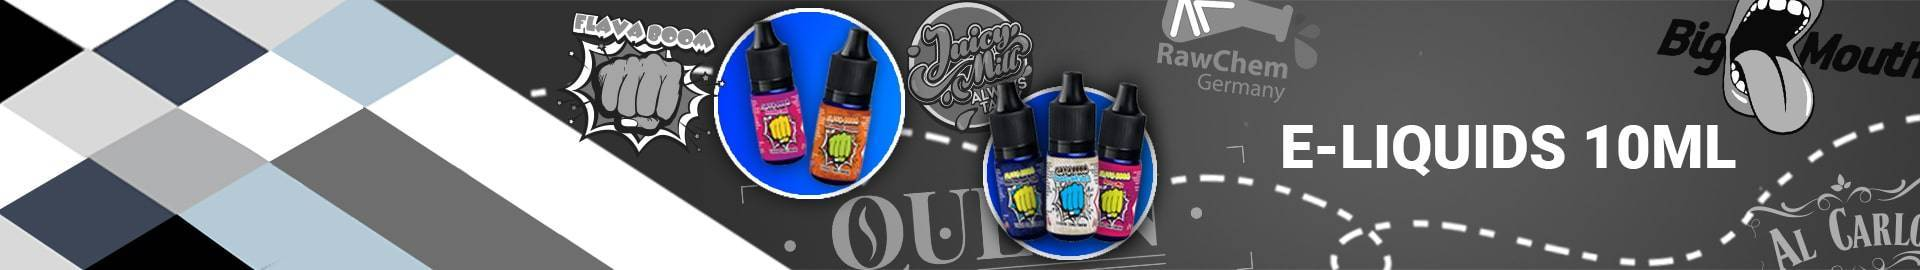 E-liquids 10ml  | Royalsmoke.co.uk